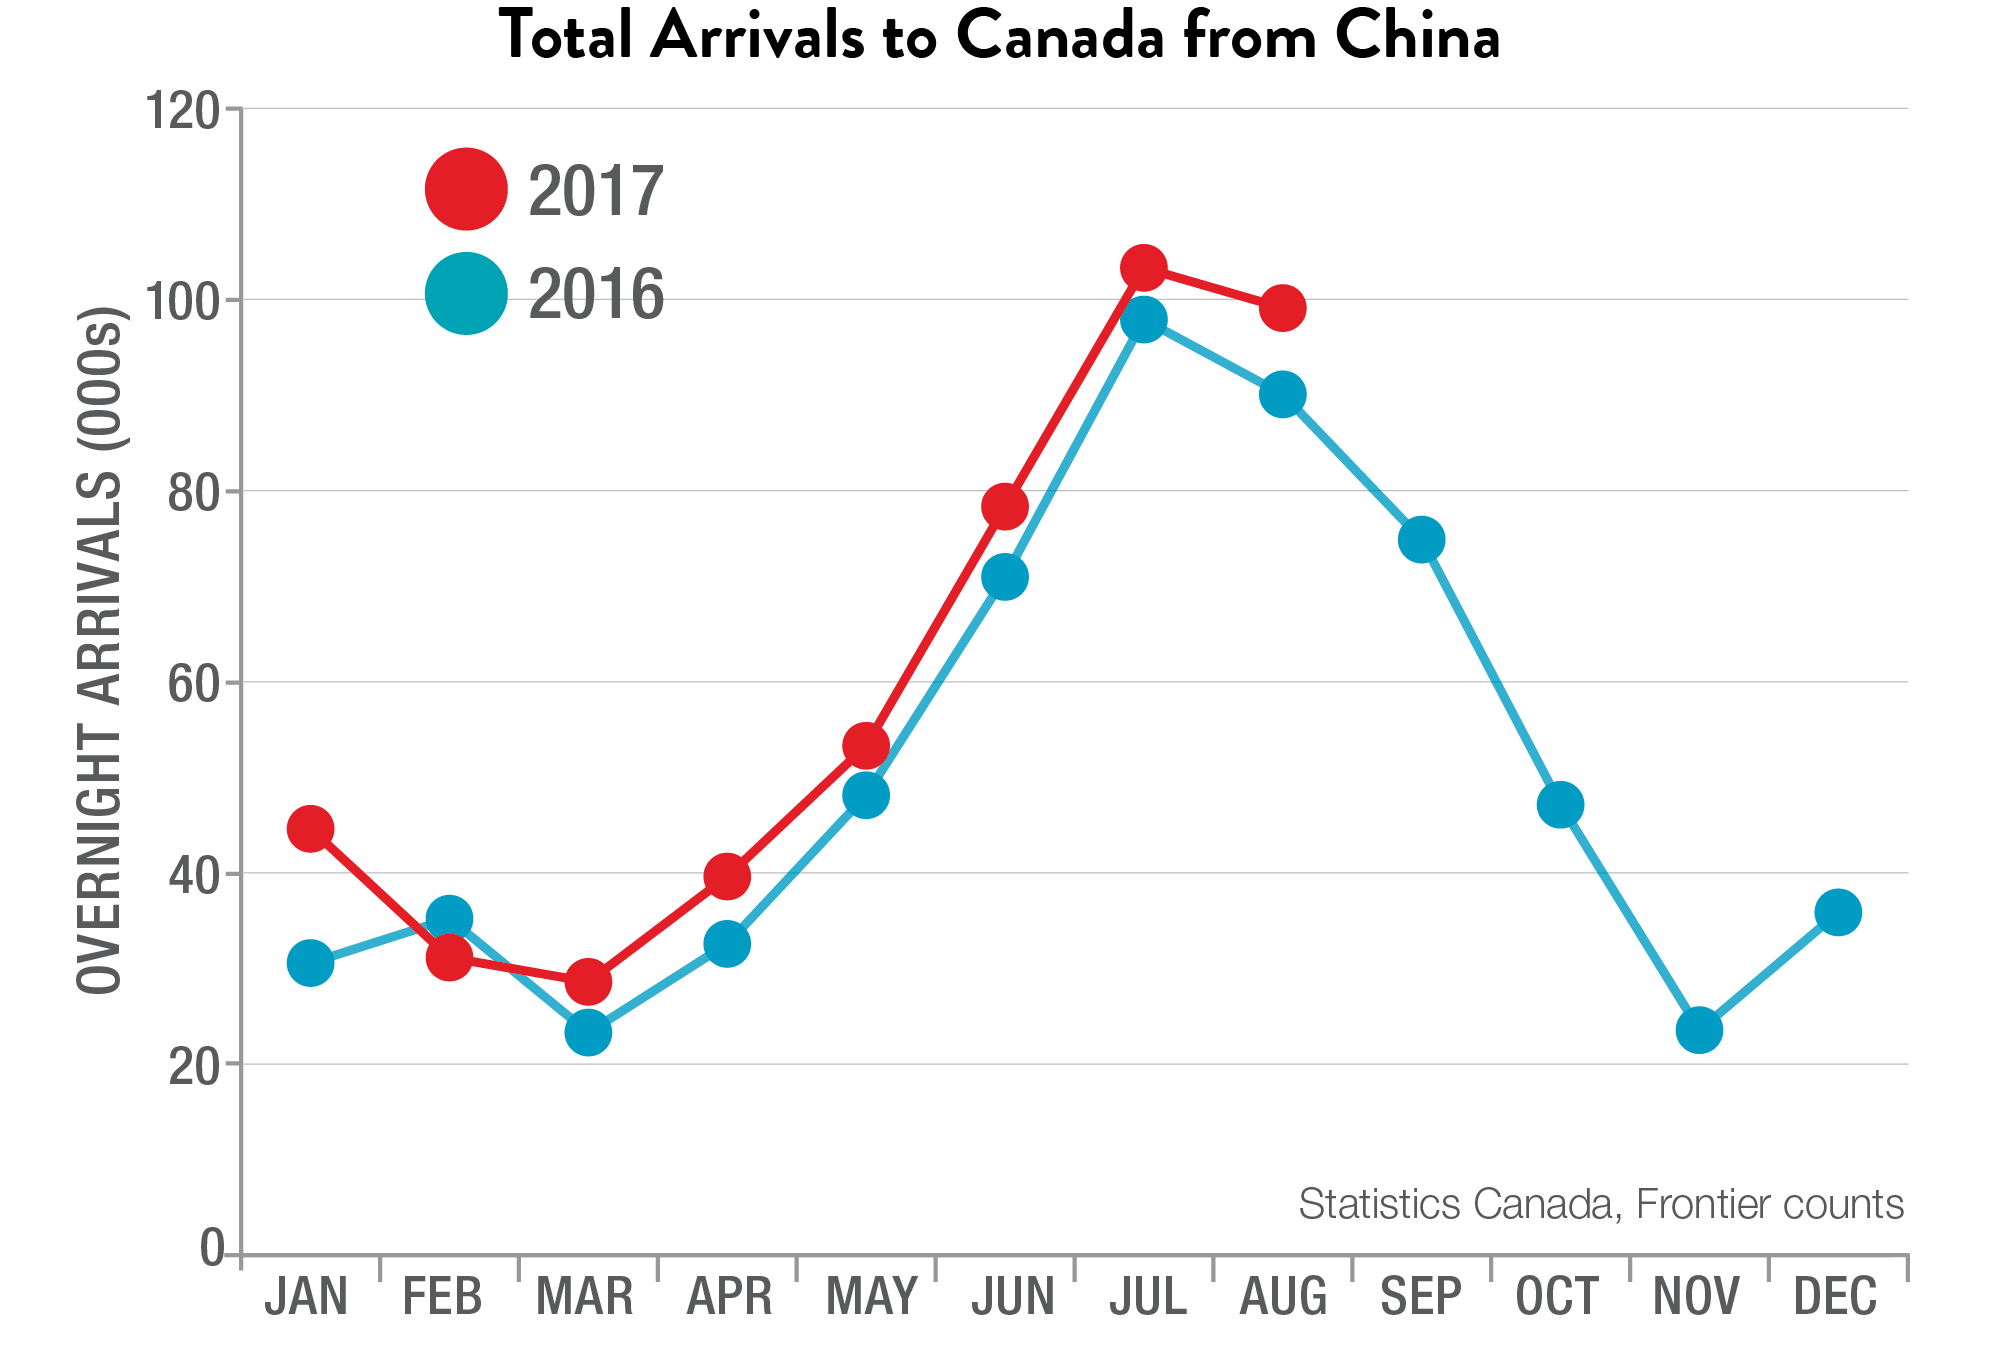 Total Arrivals to Canada from China